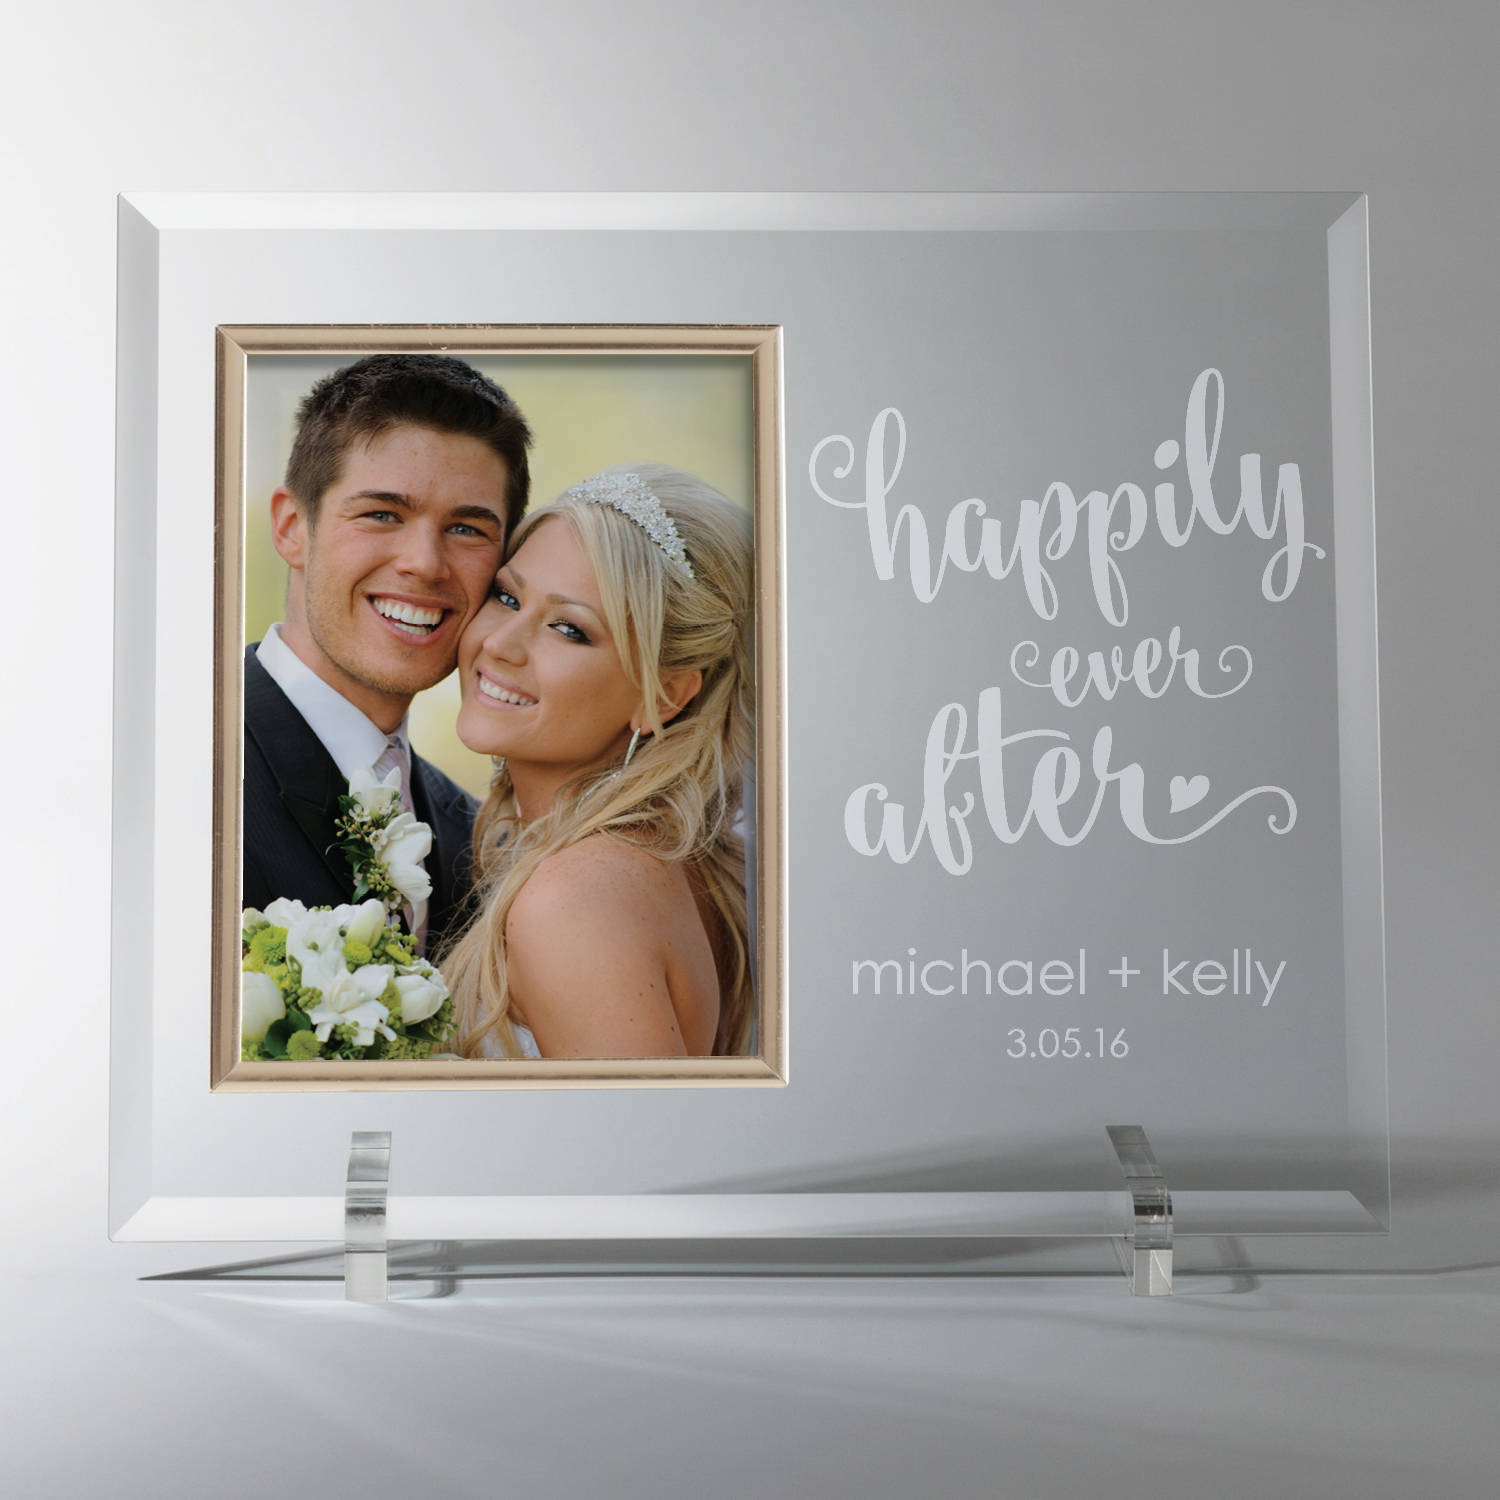 Personalized Happily Ever After Glass Frame